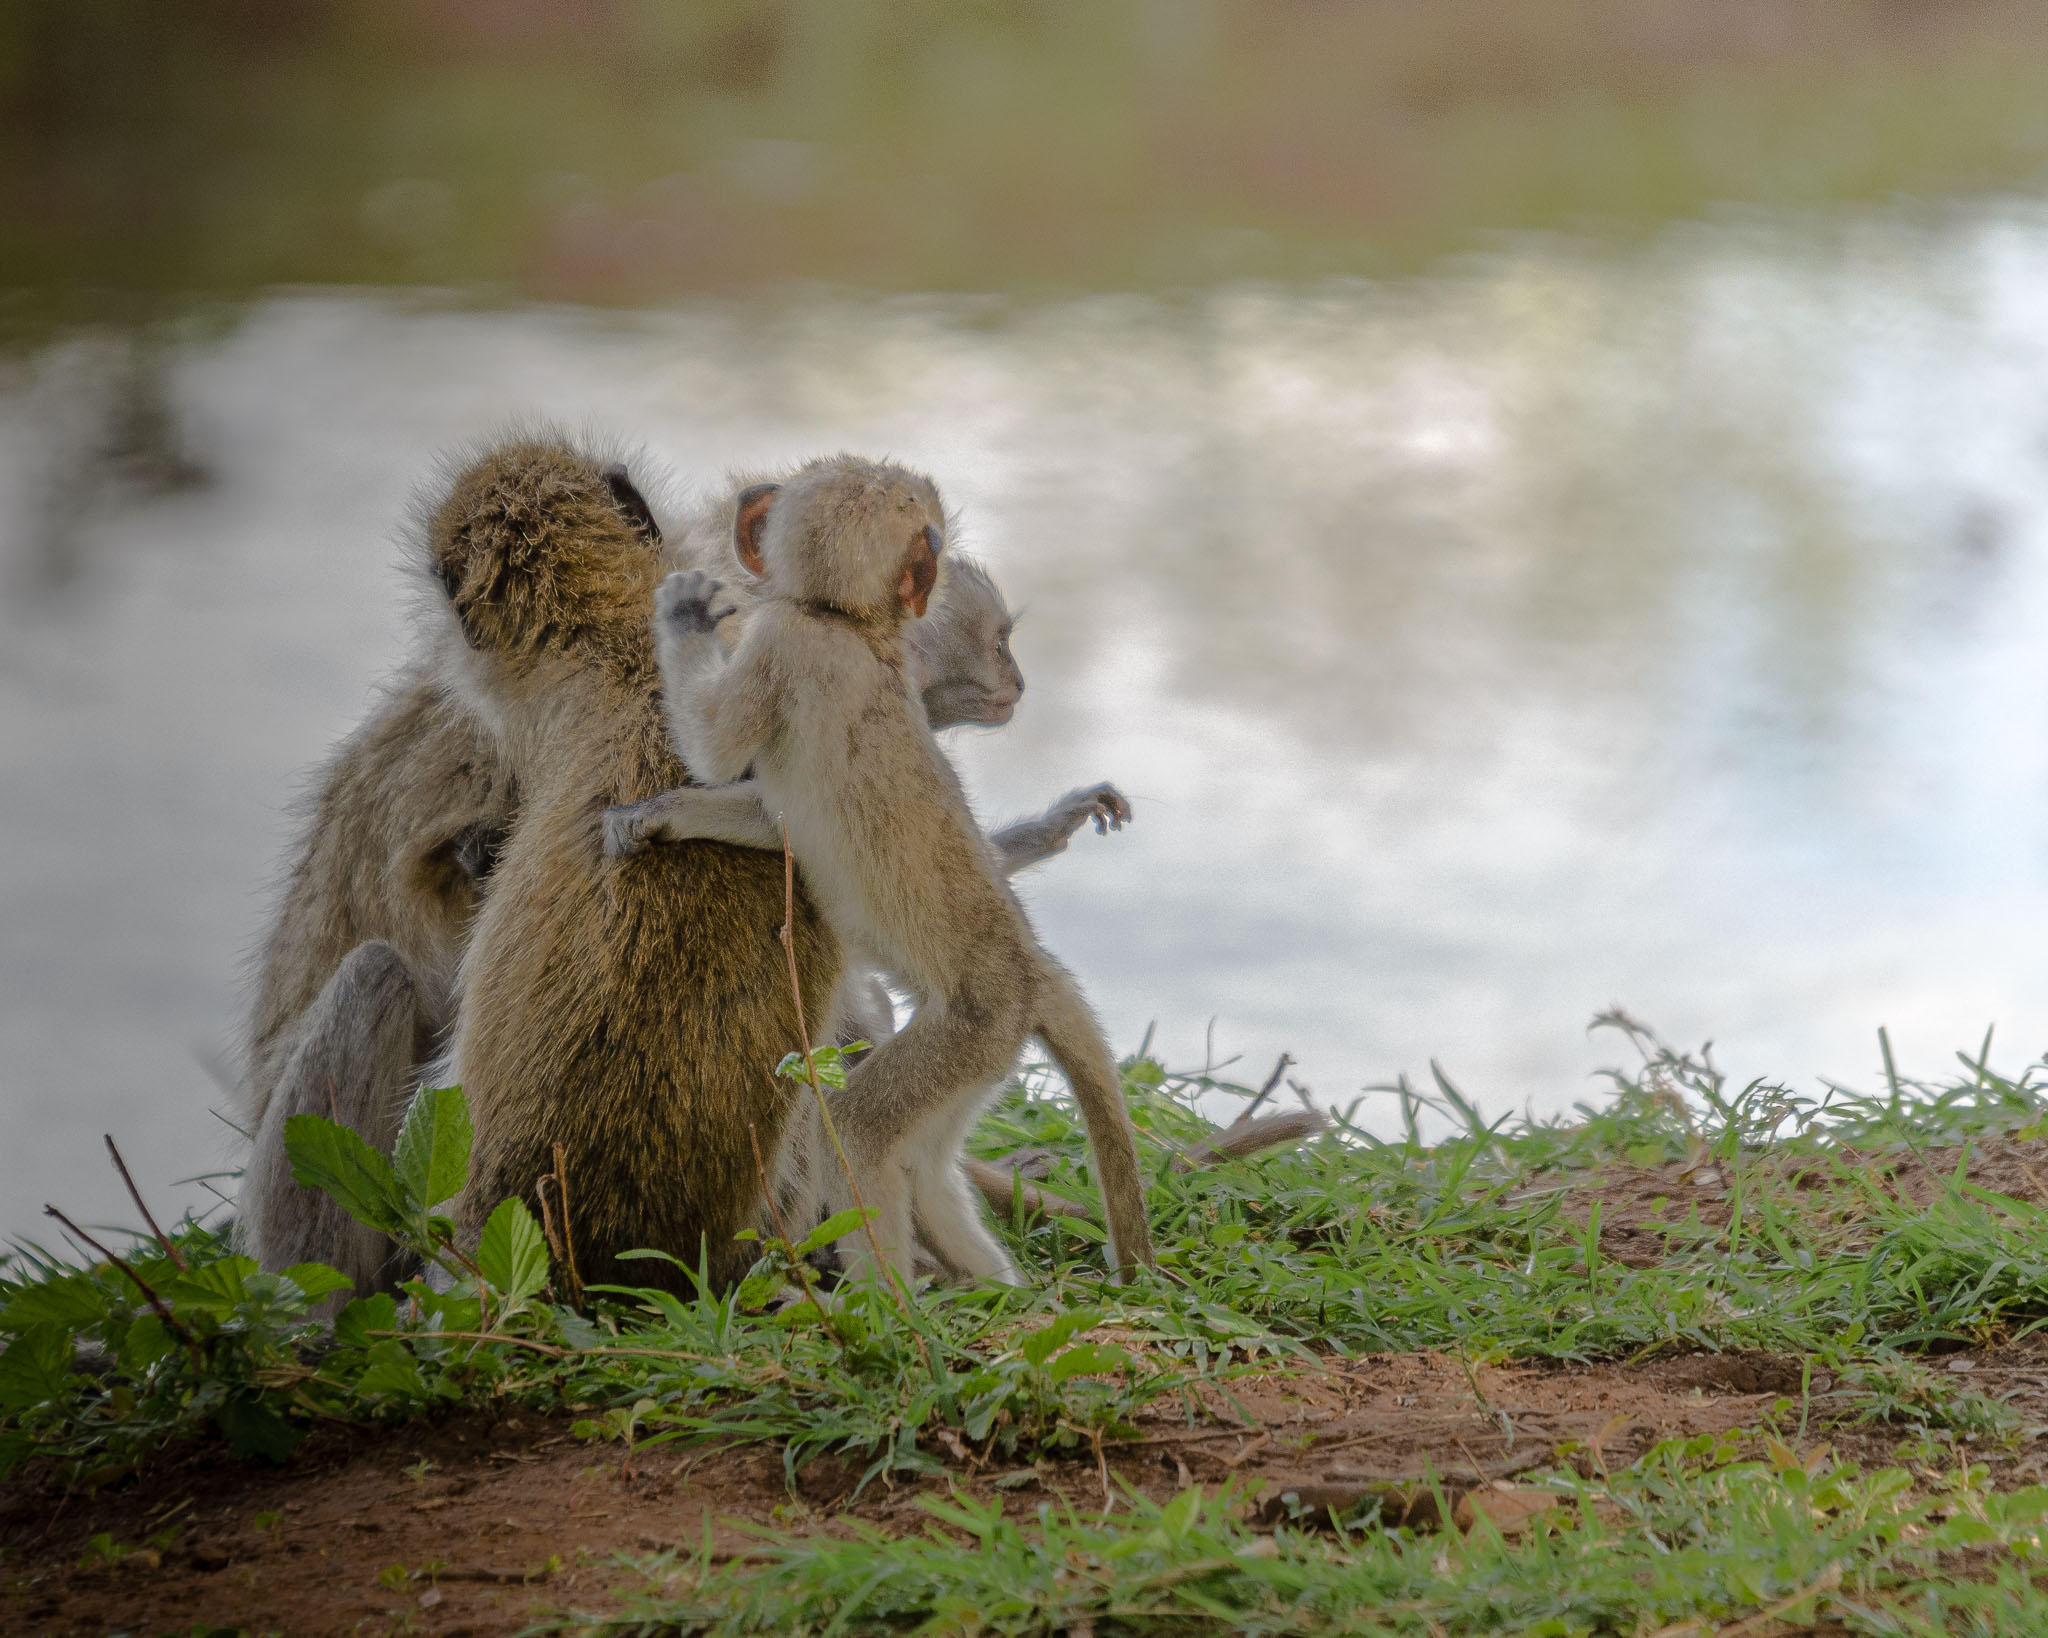 Like all primates the Vervet Monkey is a social creature and a bit of family playtime before bed is perfectly normal. in the soft golden afternoon light, this family came down from the trees to gather in the open and spend time together.